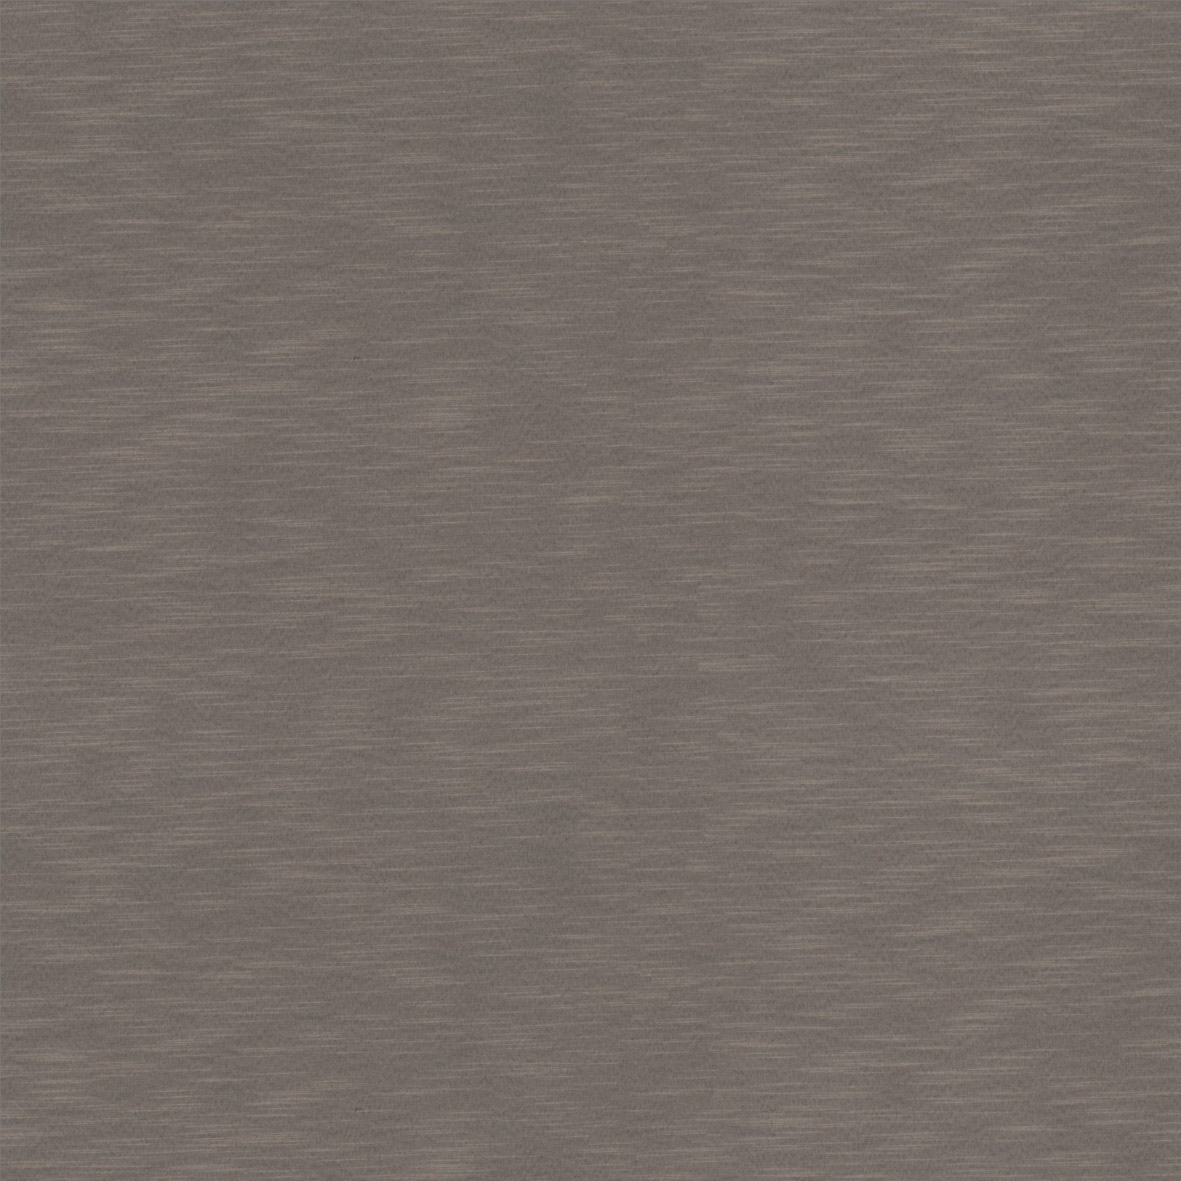 Roller_Swatch_Linenweave_Graphite_RE15781